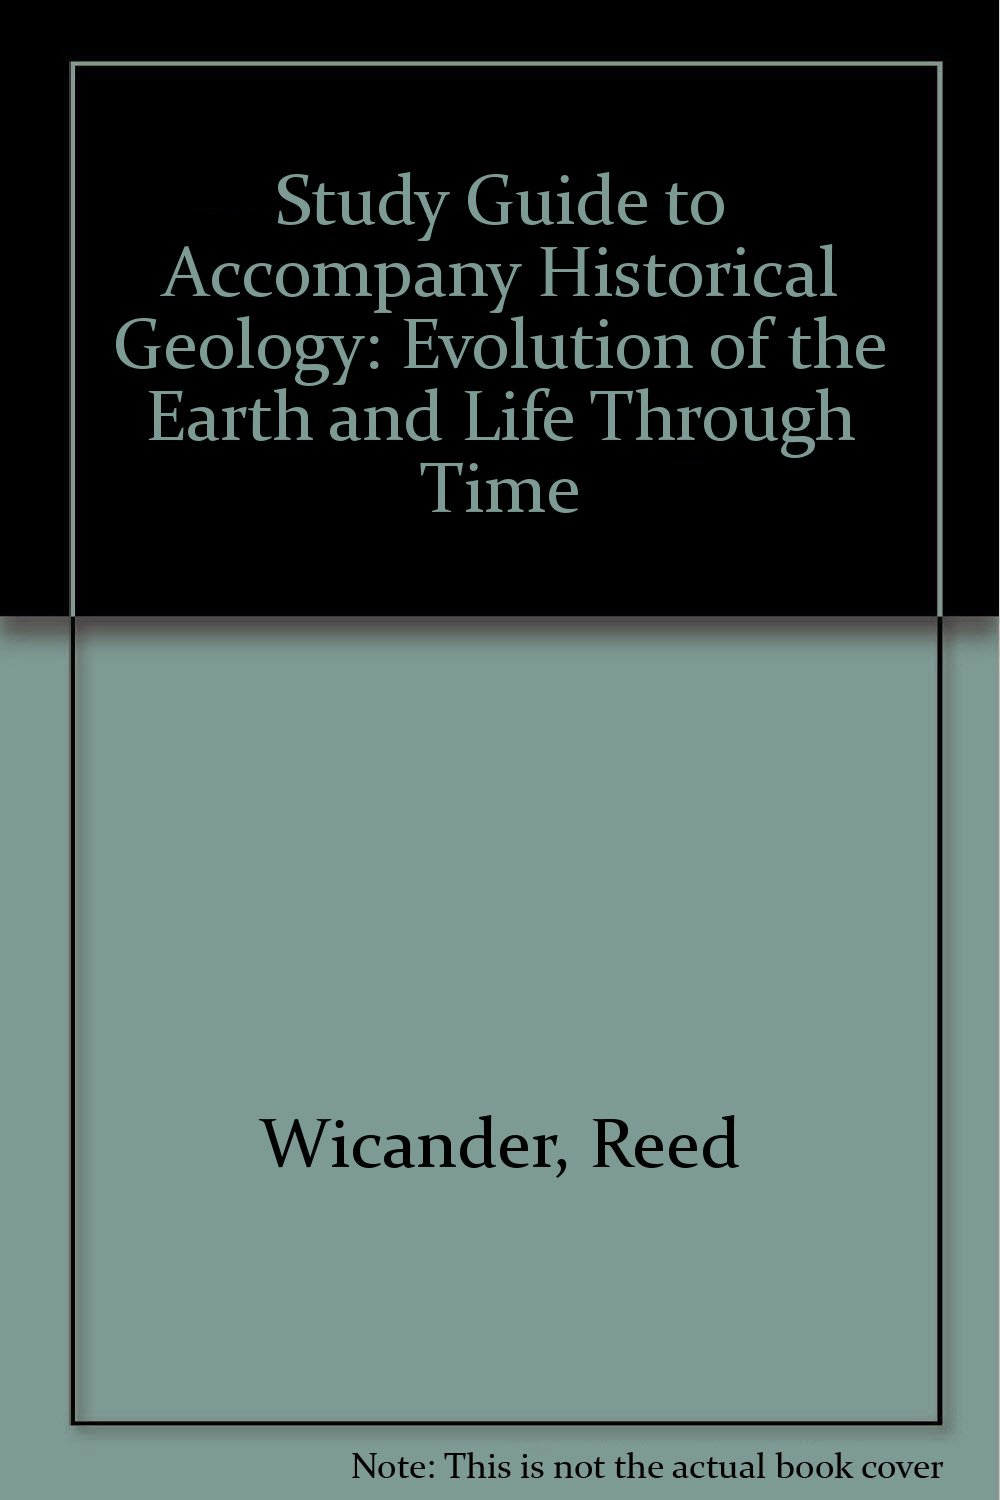 Historical Geology: Evolution of the Earth and Life Through Time: James S.  Monroe, Reed Wicander: 9780314041685: Amazon.com: Books